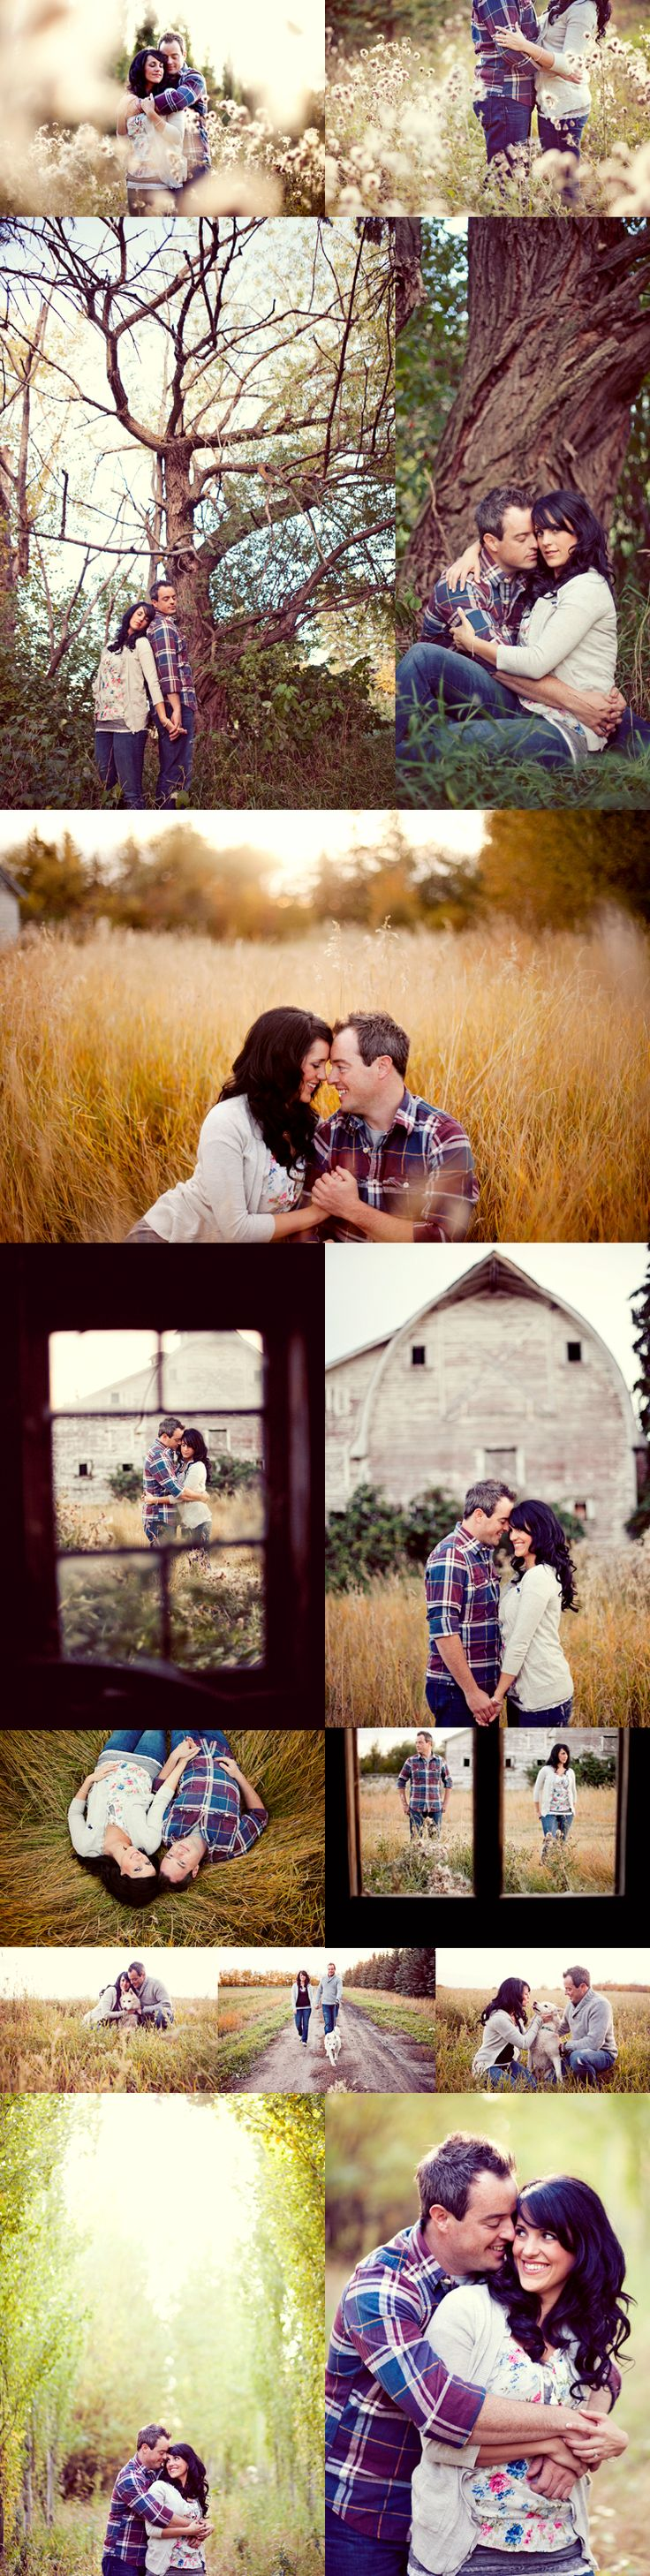 edmonton-wedding-engagment-photography-kelsy-nielson